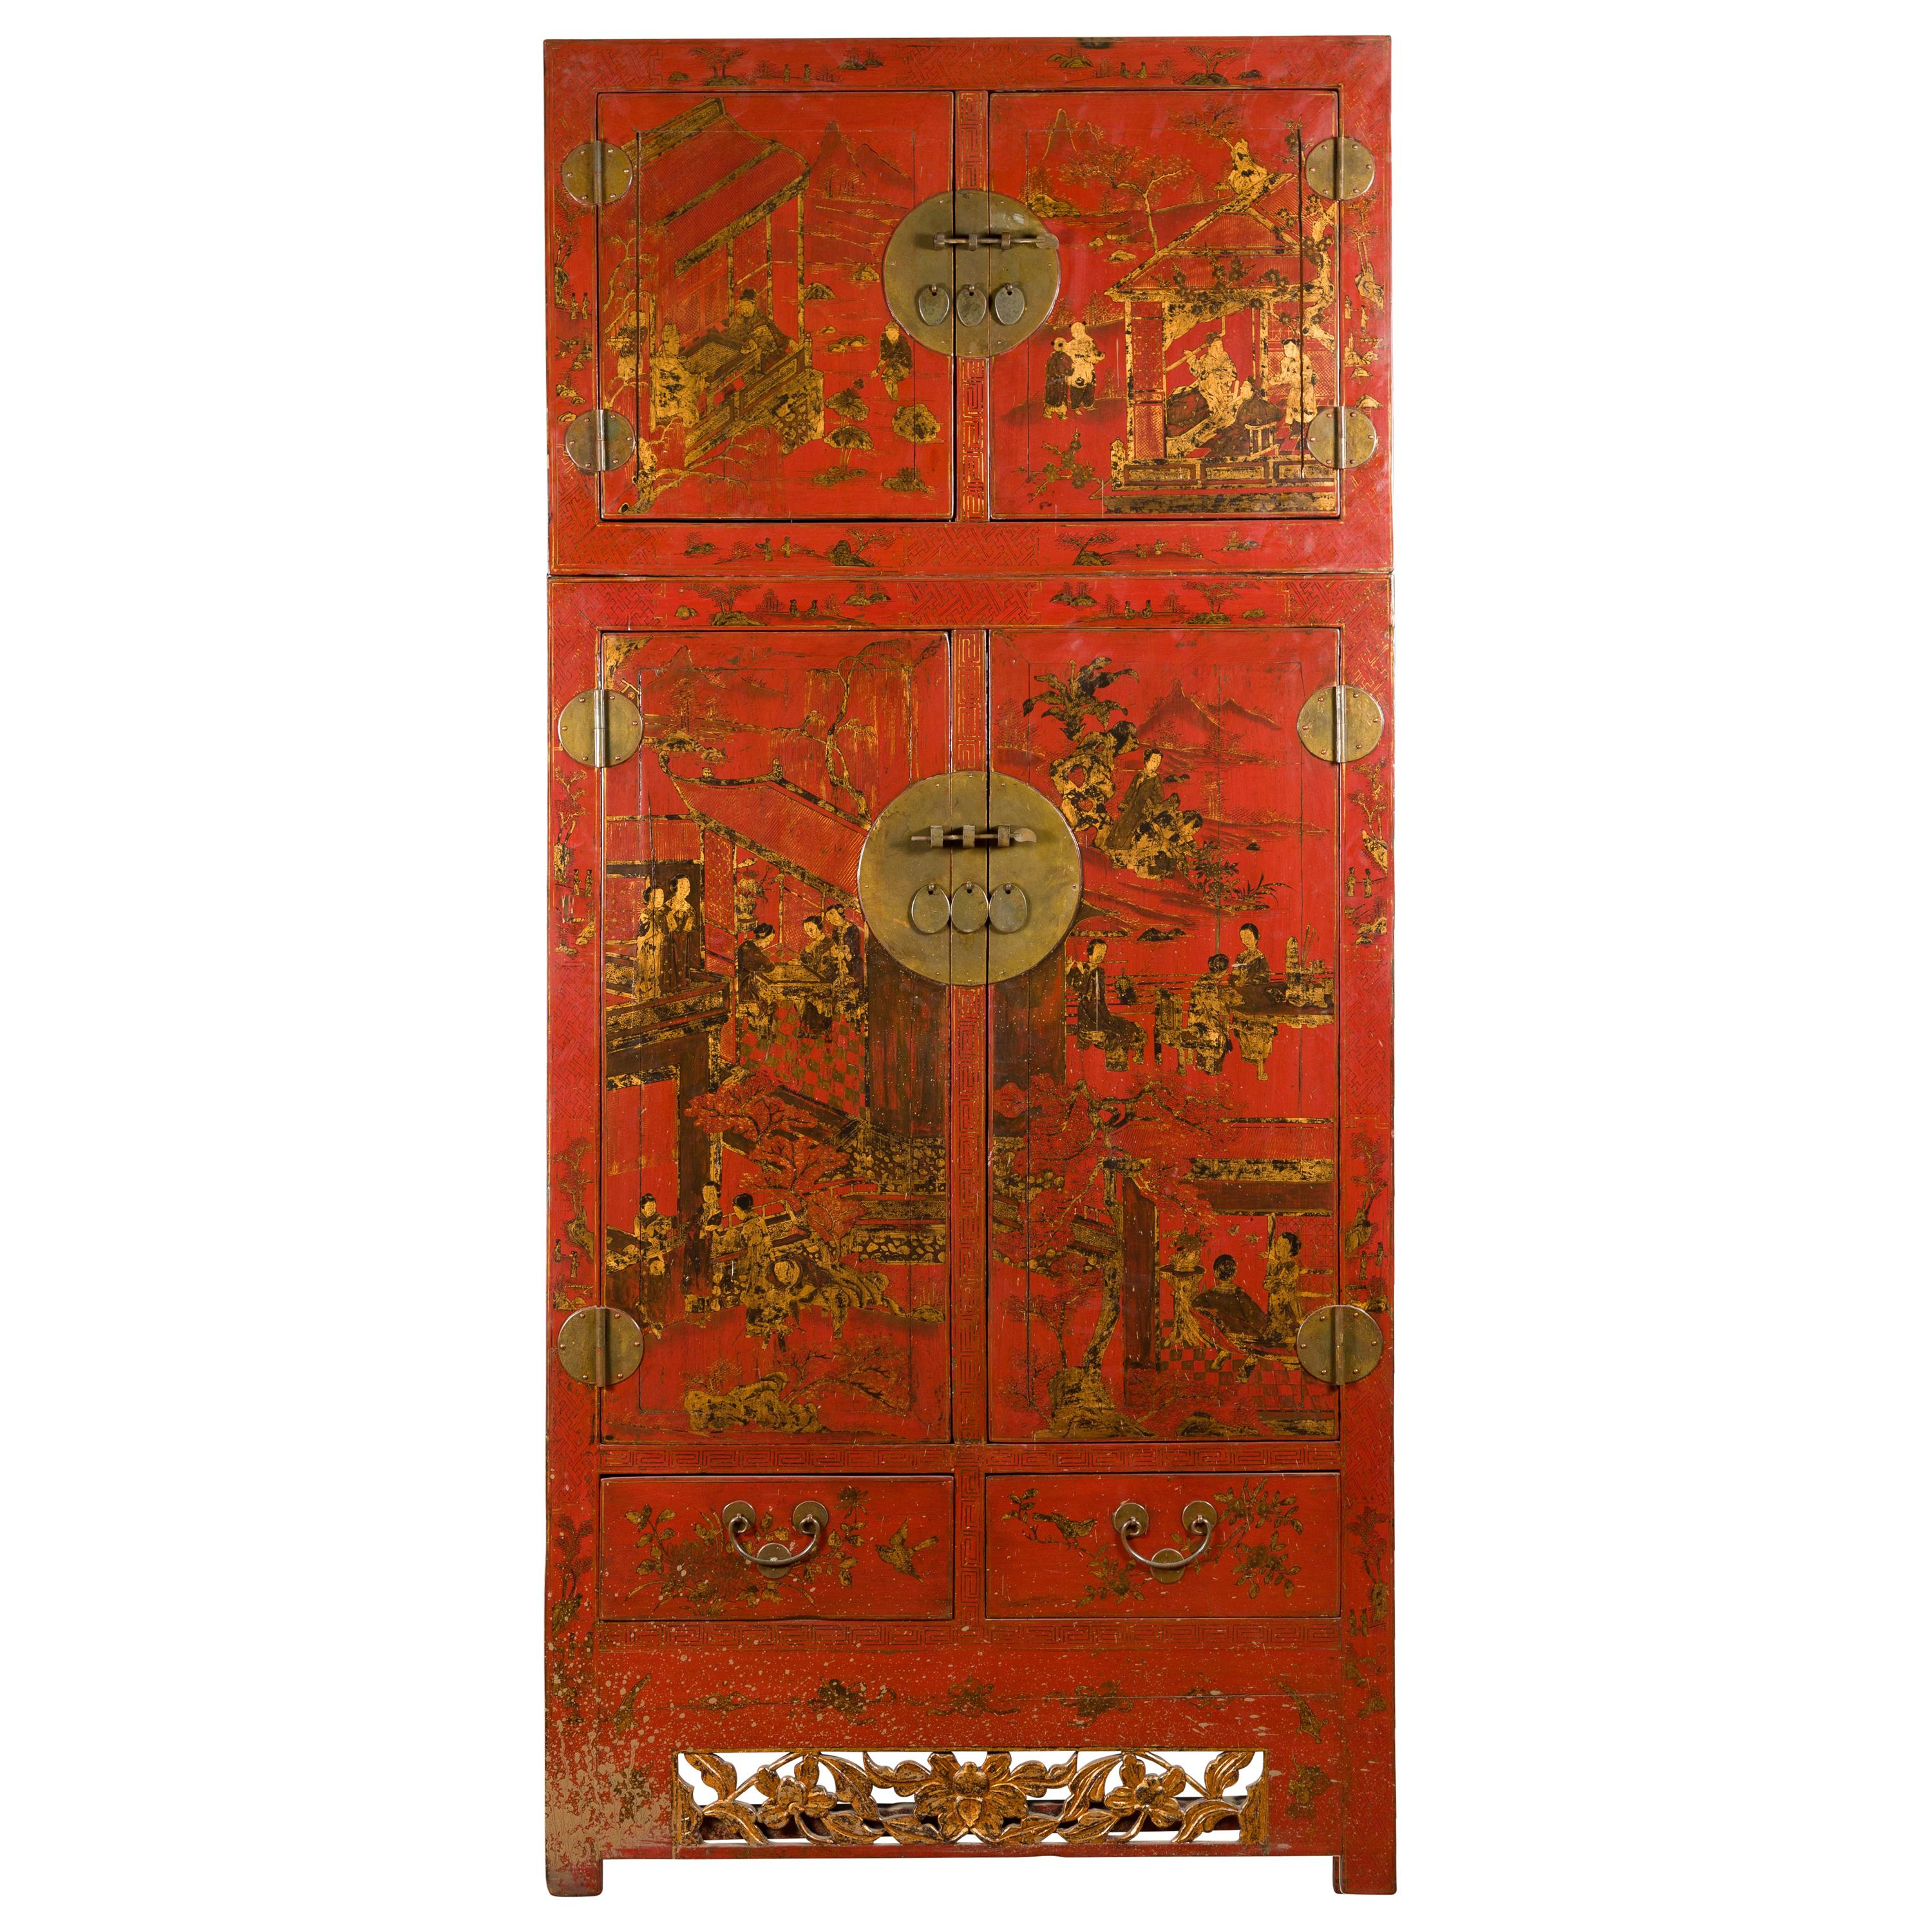 Chinese Qing Dynasty 19th Century Red Lacquer Cabinet with Chinoiserie Décor